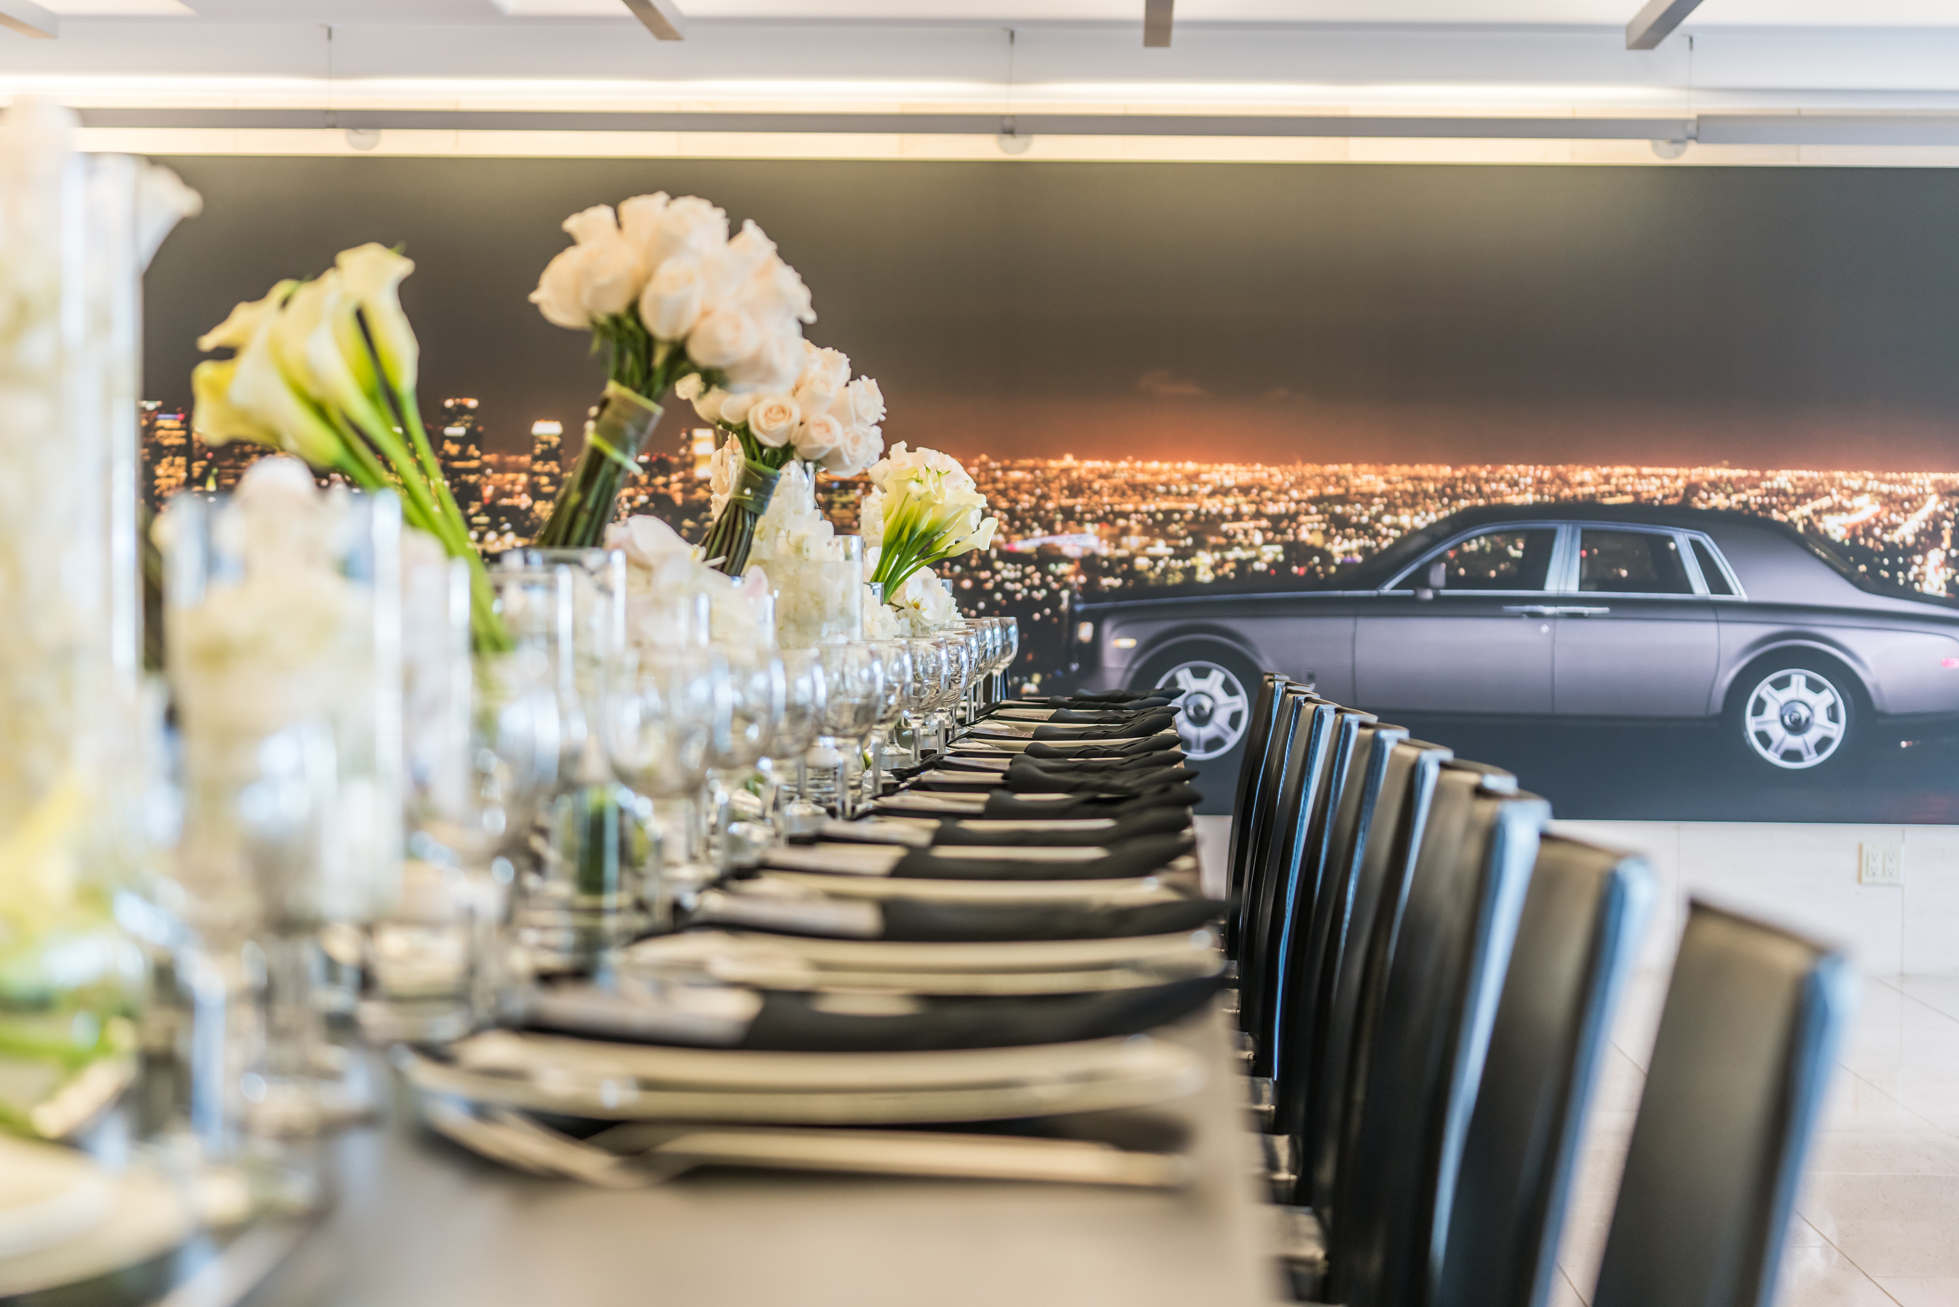 Morgan Stanley RR Dinner-28.jpg